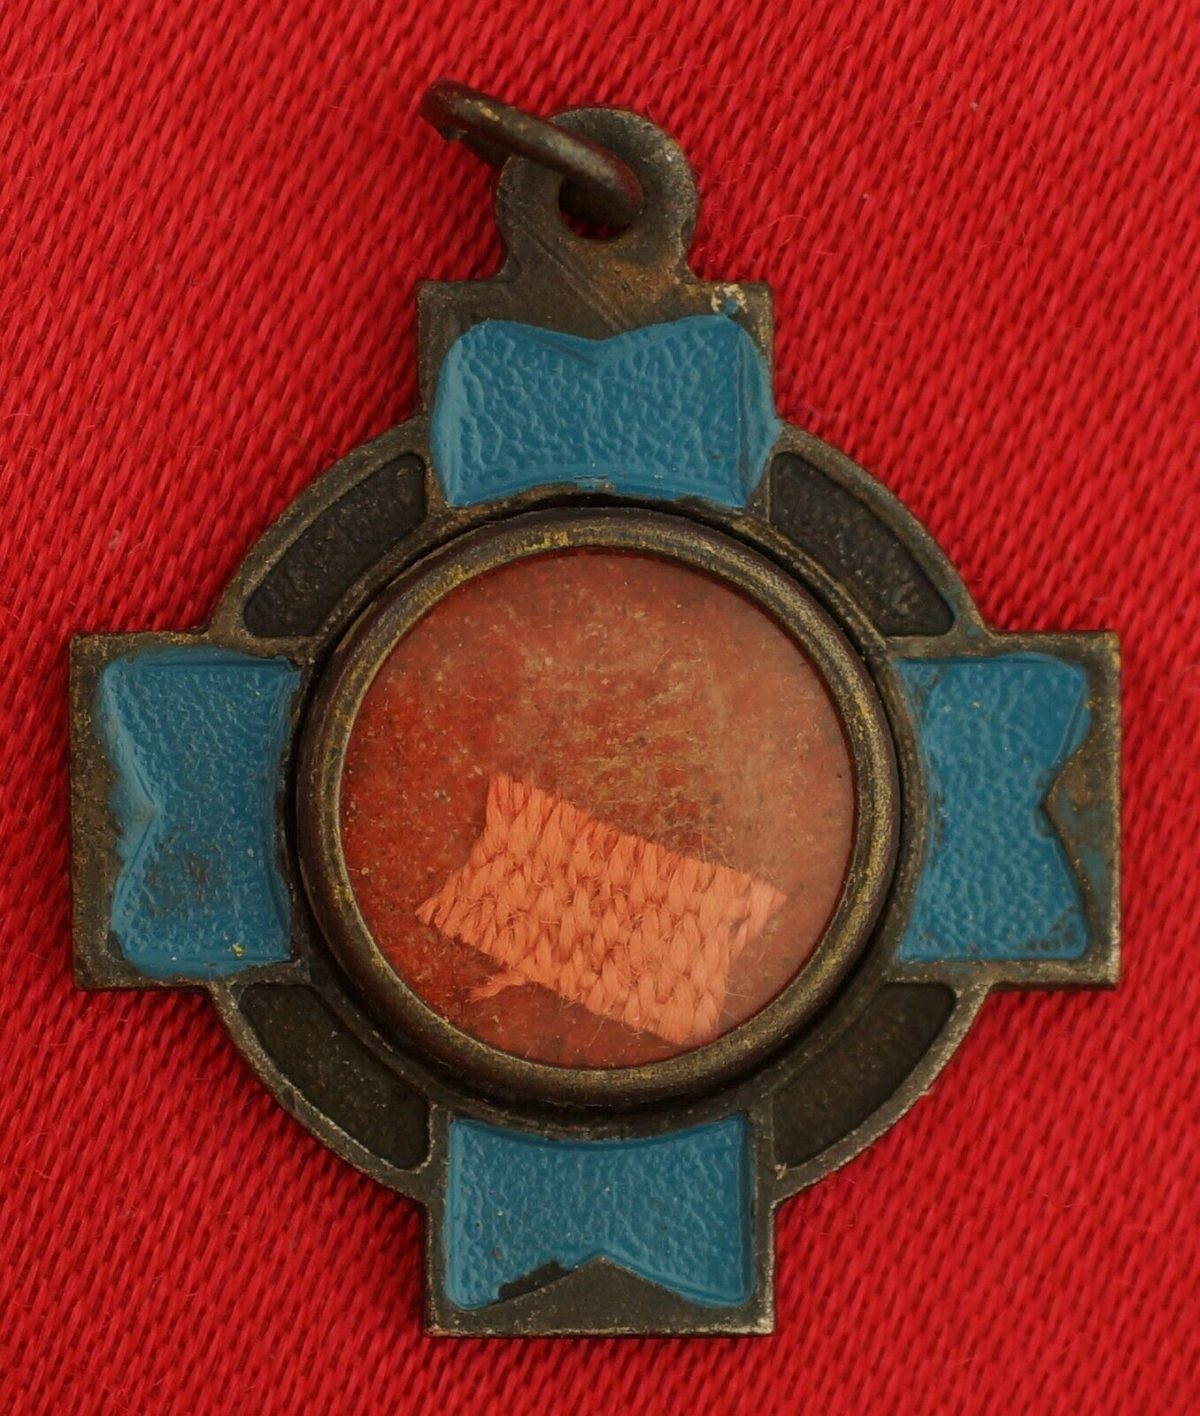 Vintage SAINT ANTHONY RELIC Medal TOUCHED TO HIS TONGUE Religious PADUA Pendant